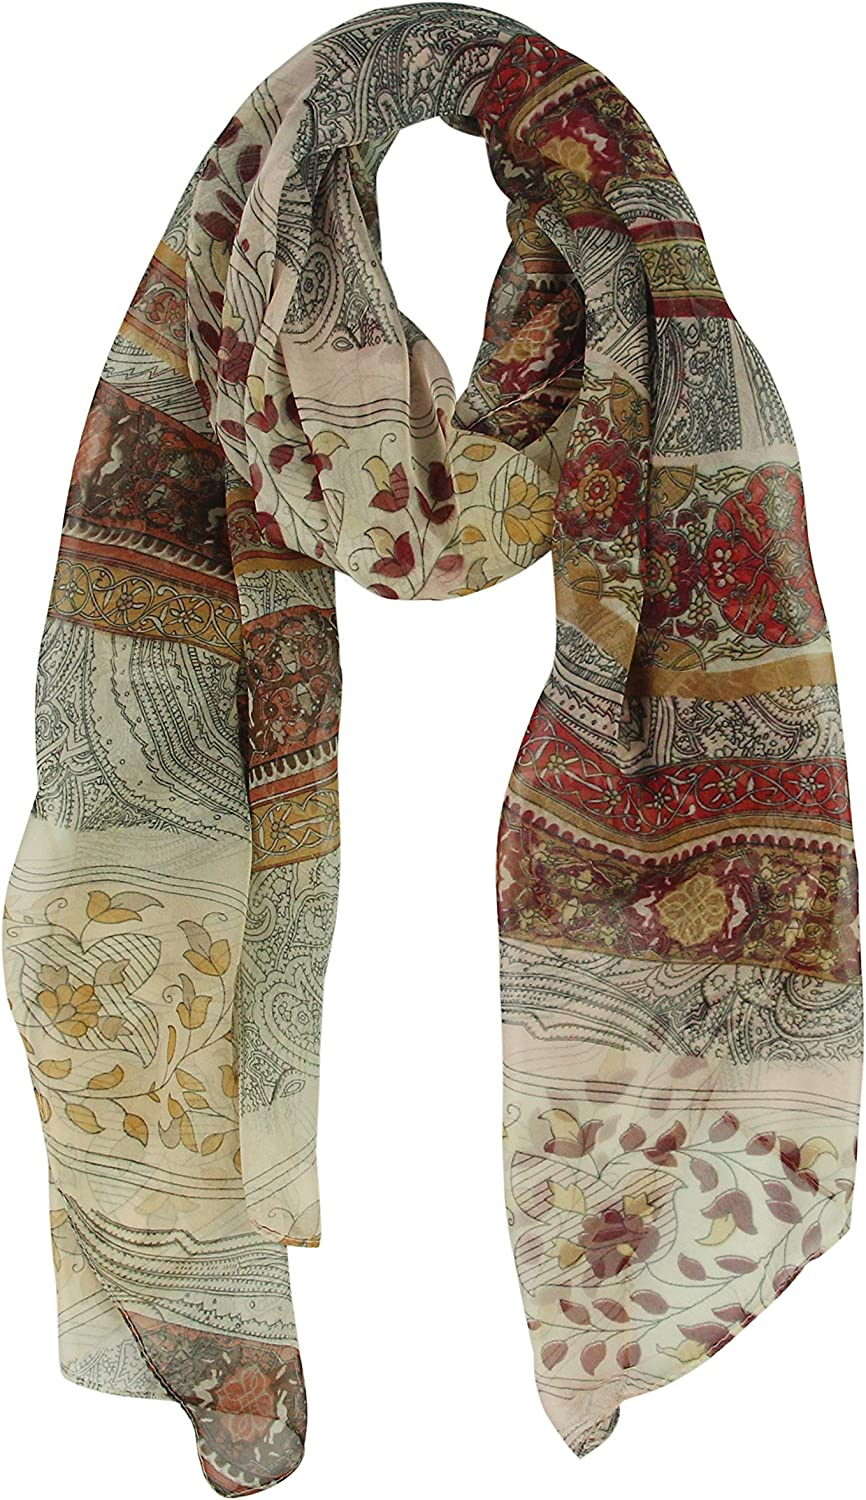 Long Chiffon Sheer Scarf Gradient - Pantonight Shaded Colors Lightweight Scarf For Womens